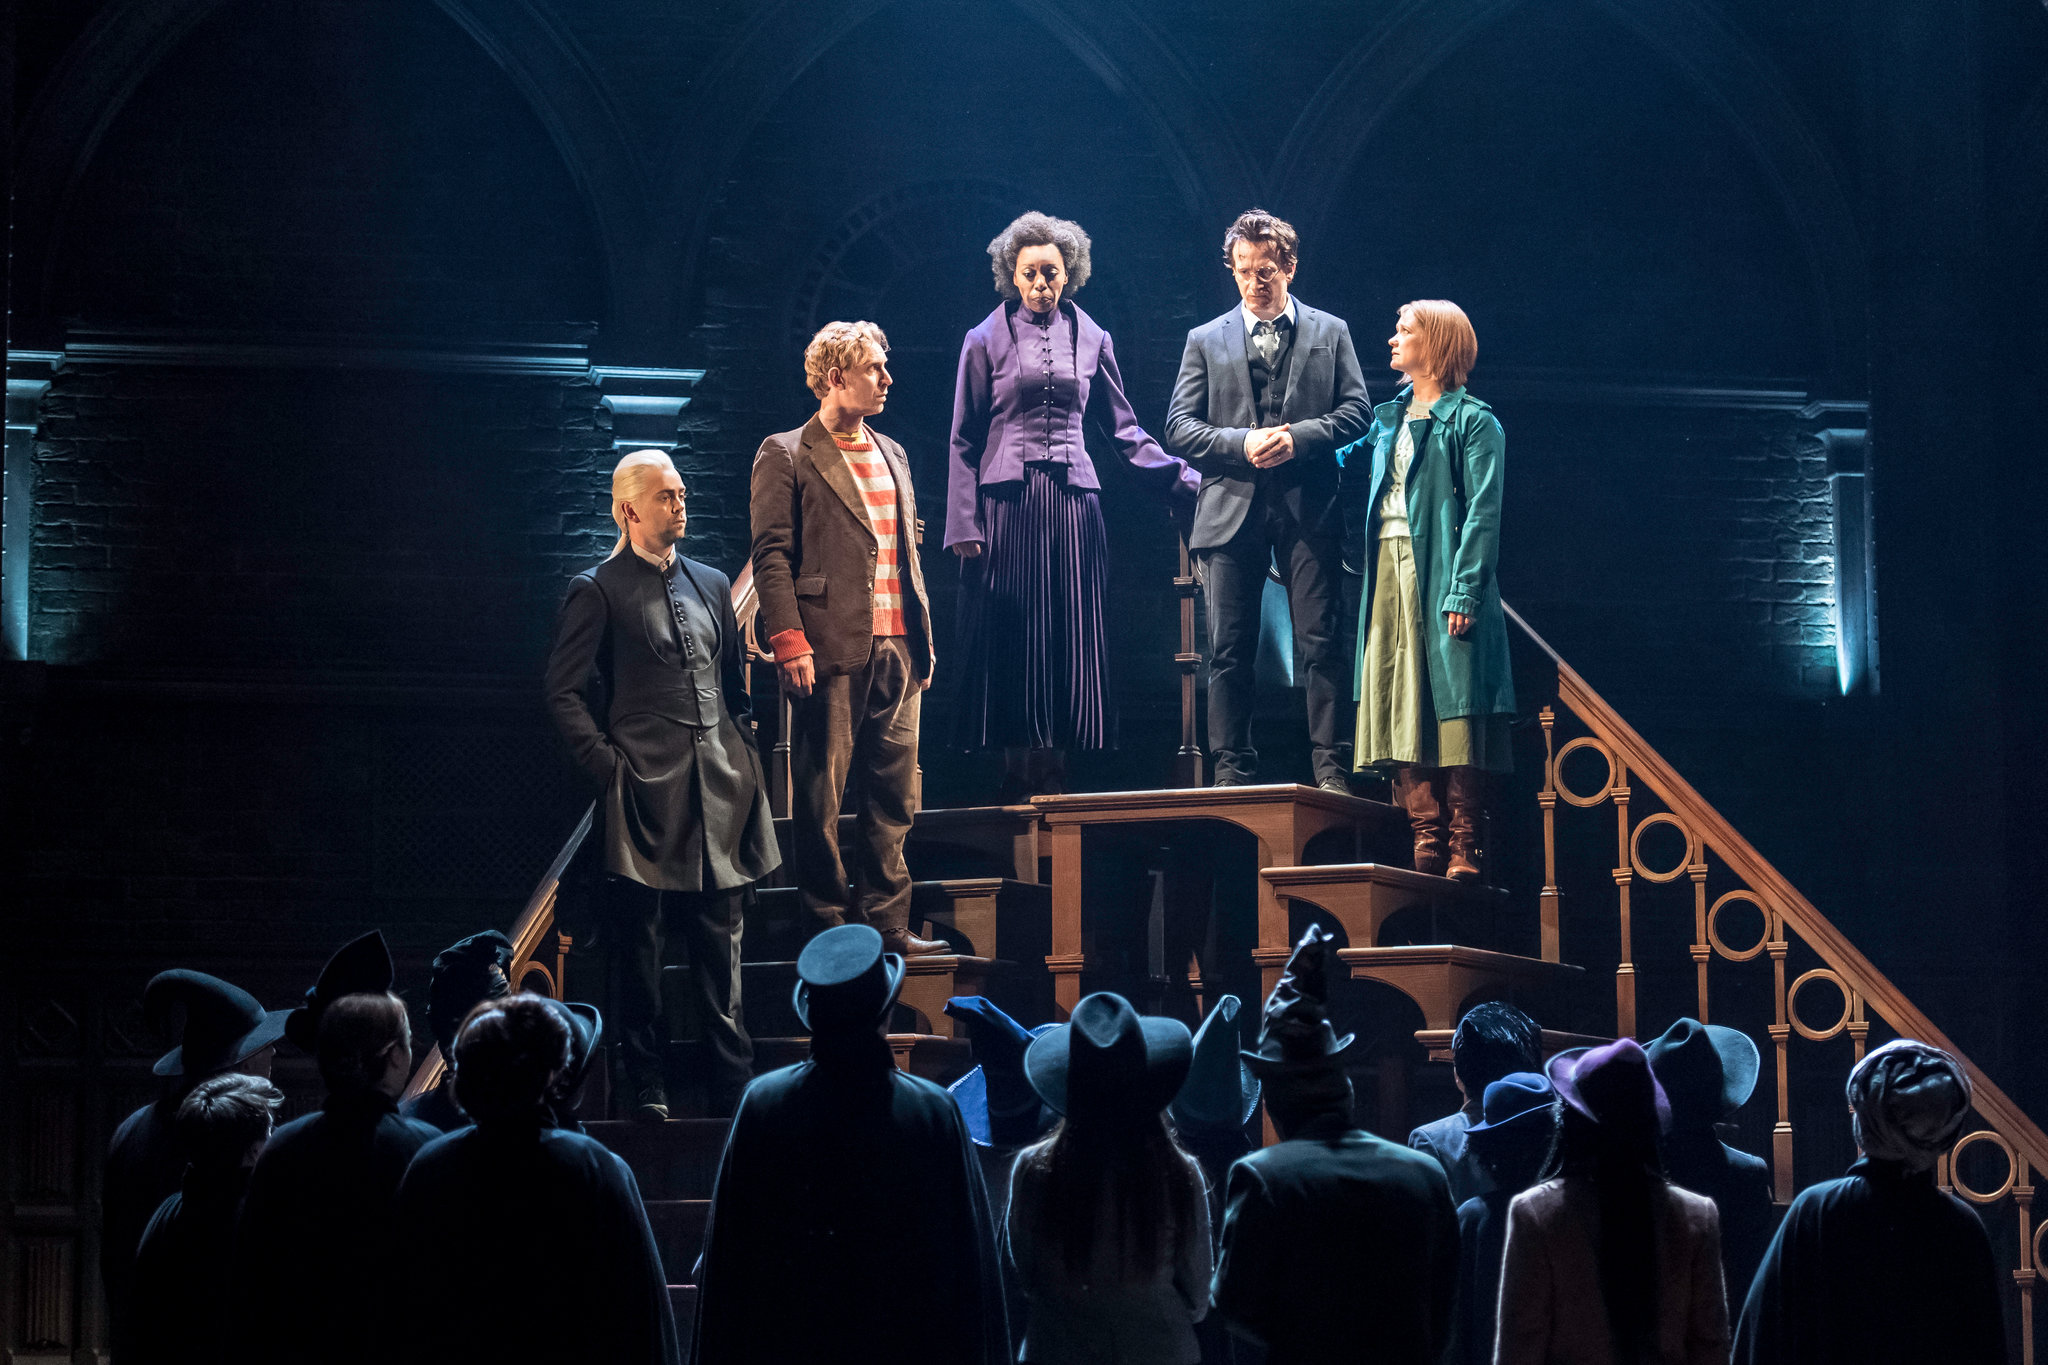 Harry Potter and The Cursed Child - Part 1 & 2 (11/12 7:30PM & 11/13 7:30PM) at Lyric Theatre